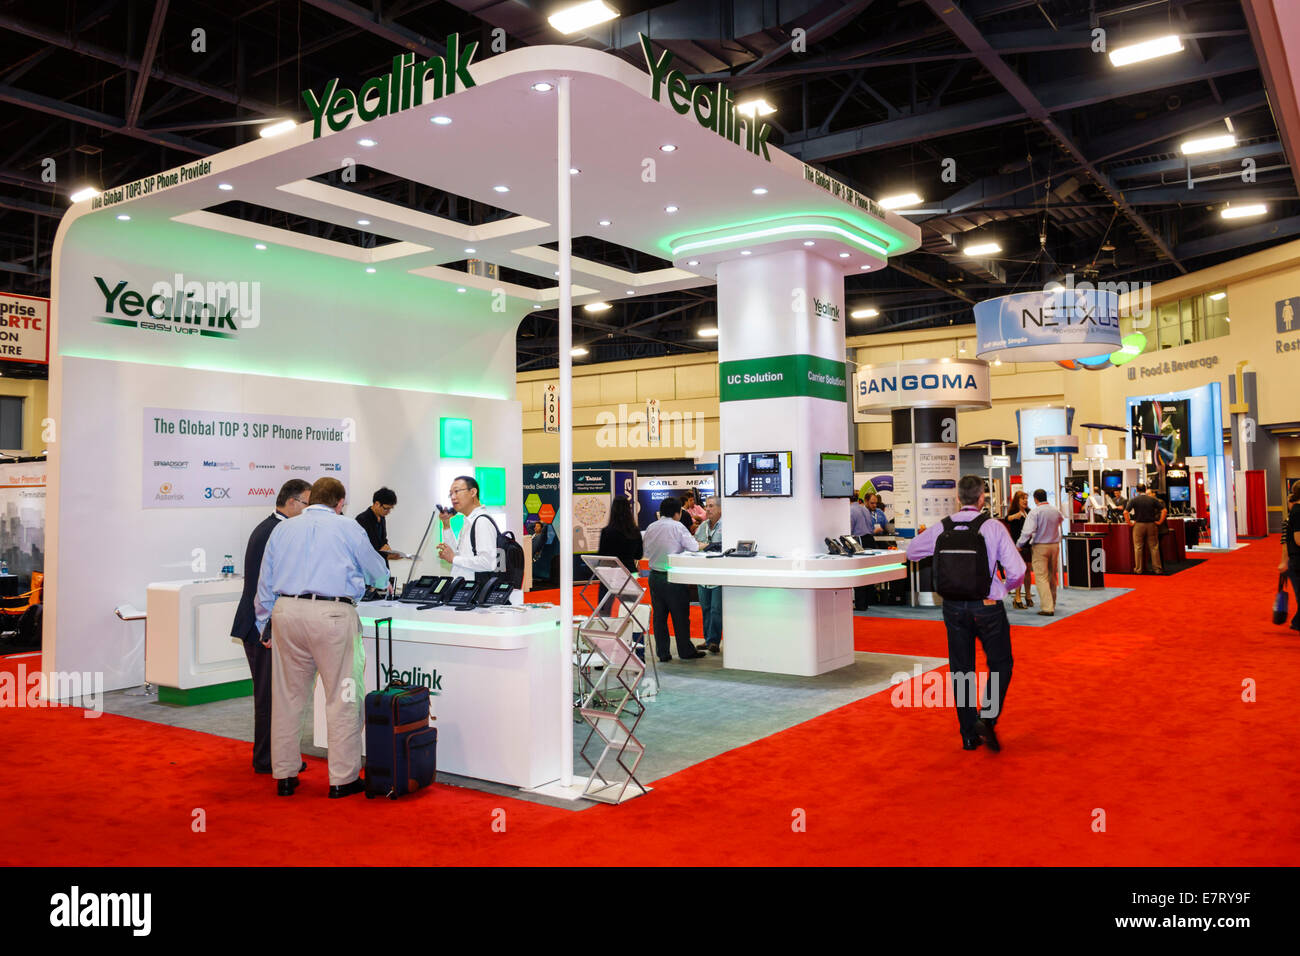 Exhibition Stall Vendors : Exhibitors stall stalls booth booths vendor vendors stock photos